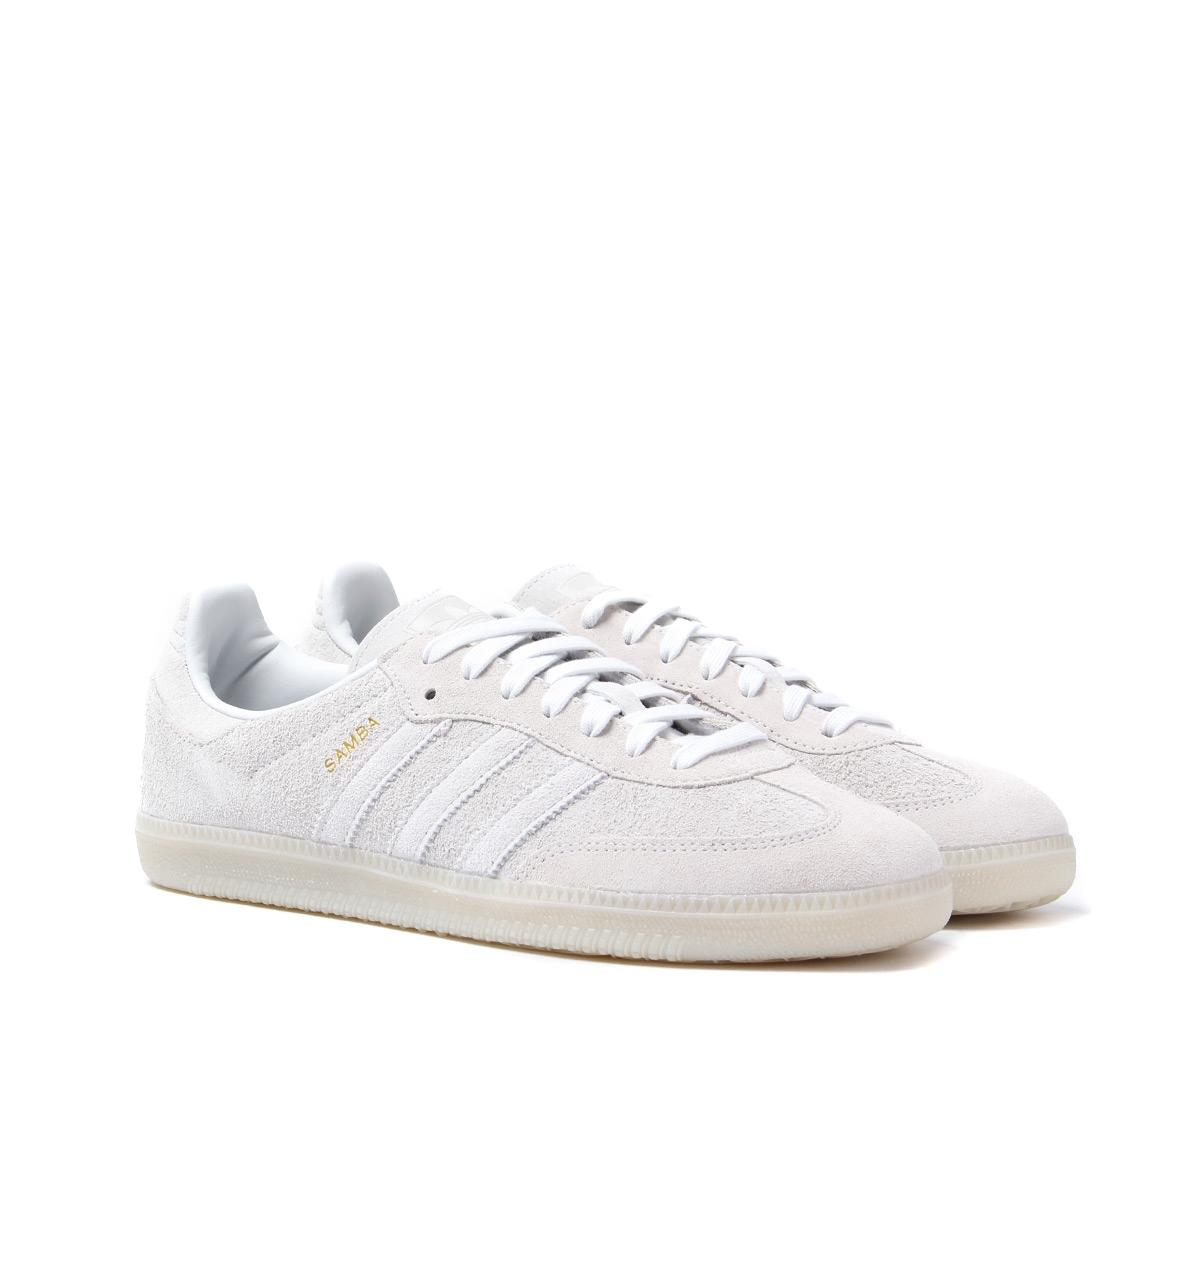 premium selection 9a1e2 fda18 adidas Originals. Mens Adidas Samba Og Crystal White Trainers